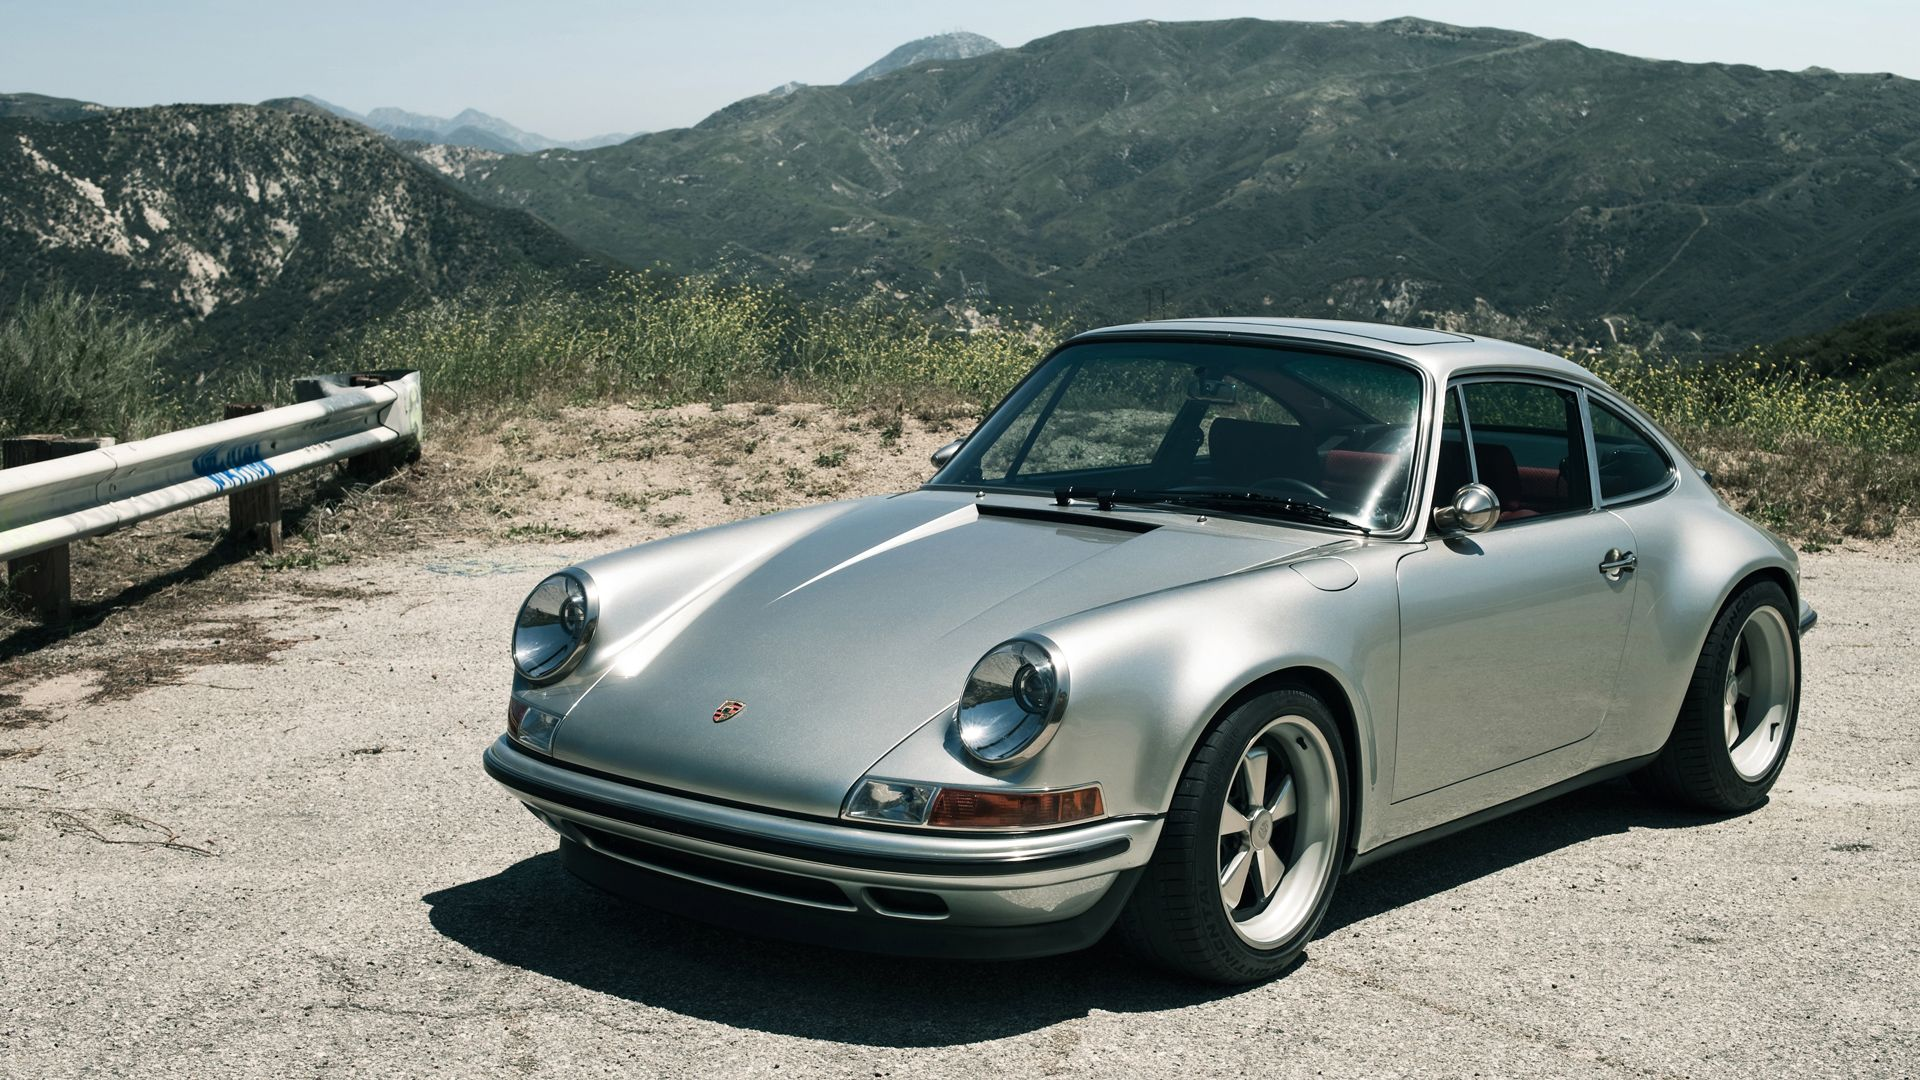 Porsche 911 Classic Cars Check out THESE Porsches! –> germancars.everyt…